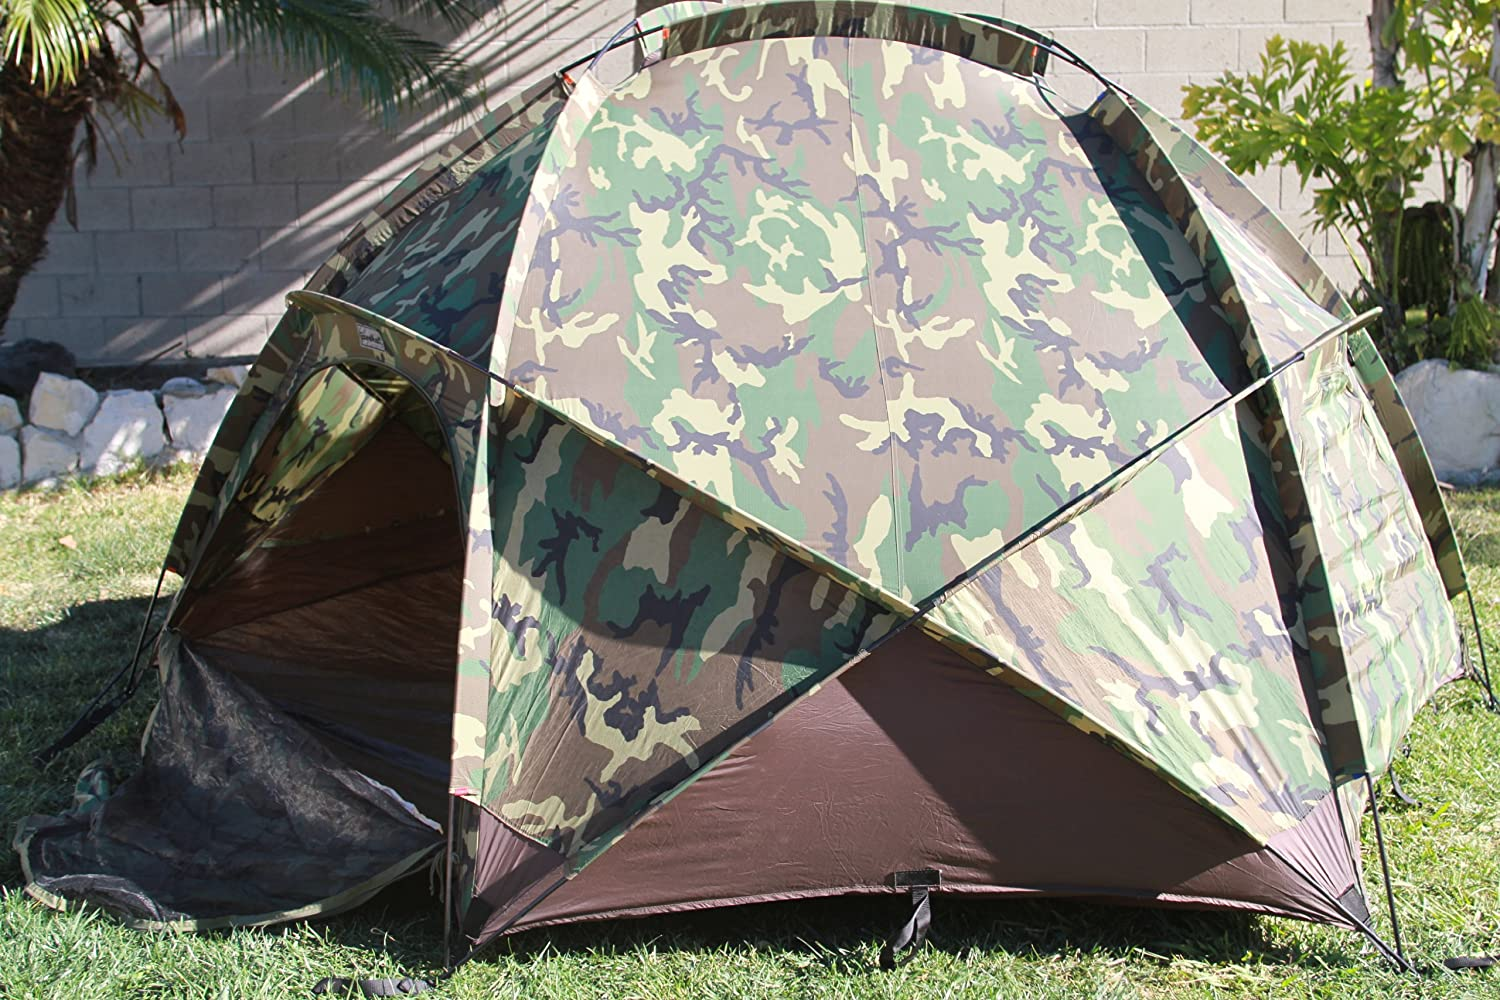 Amazon.com  Extreme Cold Weather Tent (ECWT) Four Person Four-Season USMC used excellent  Sports u0026 Outdoors & Amazon.com : Extreme Cold Weather Tent (ECWT) Four Person Four ...